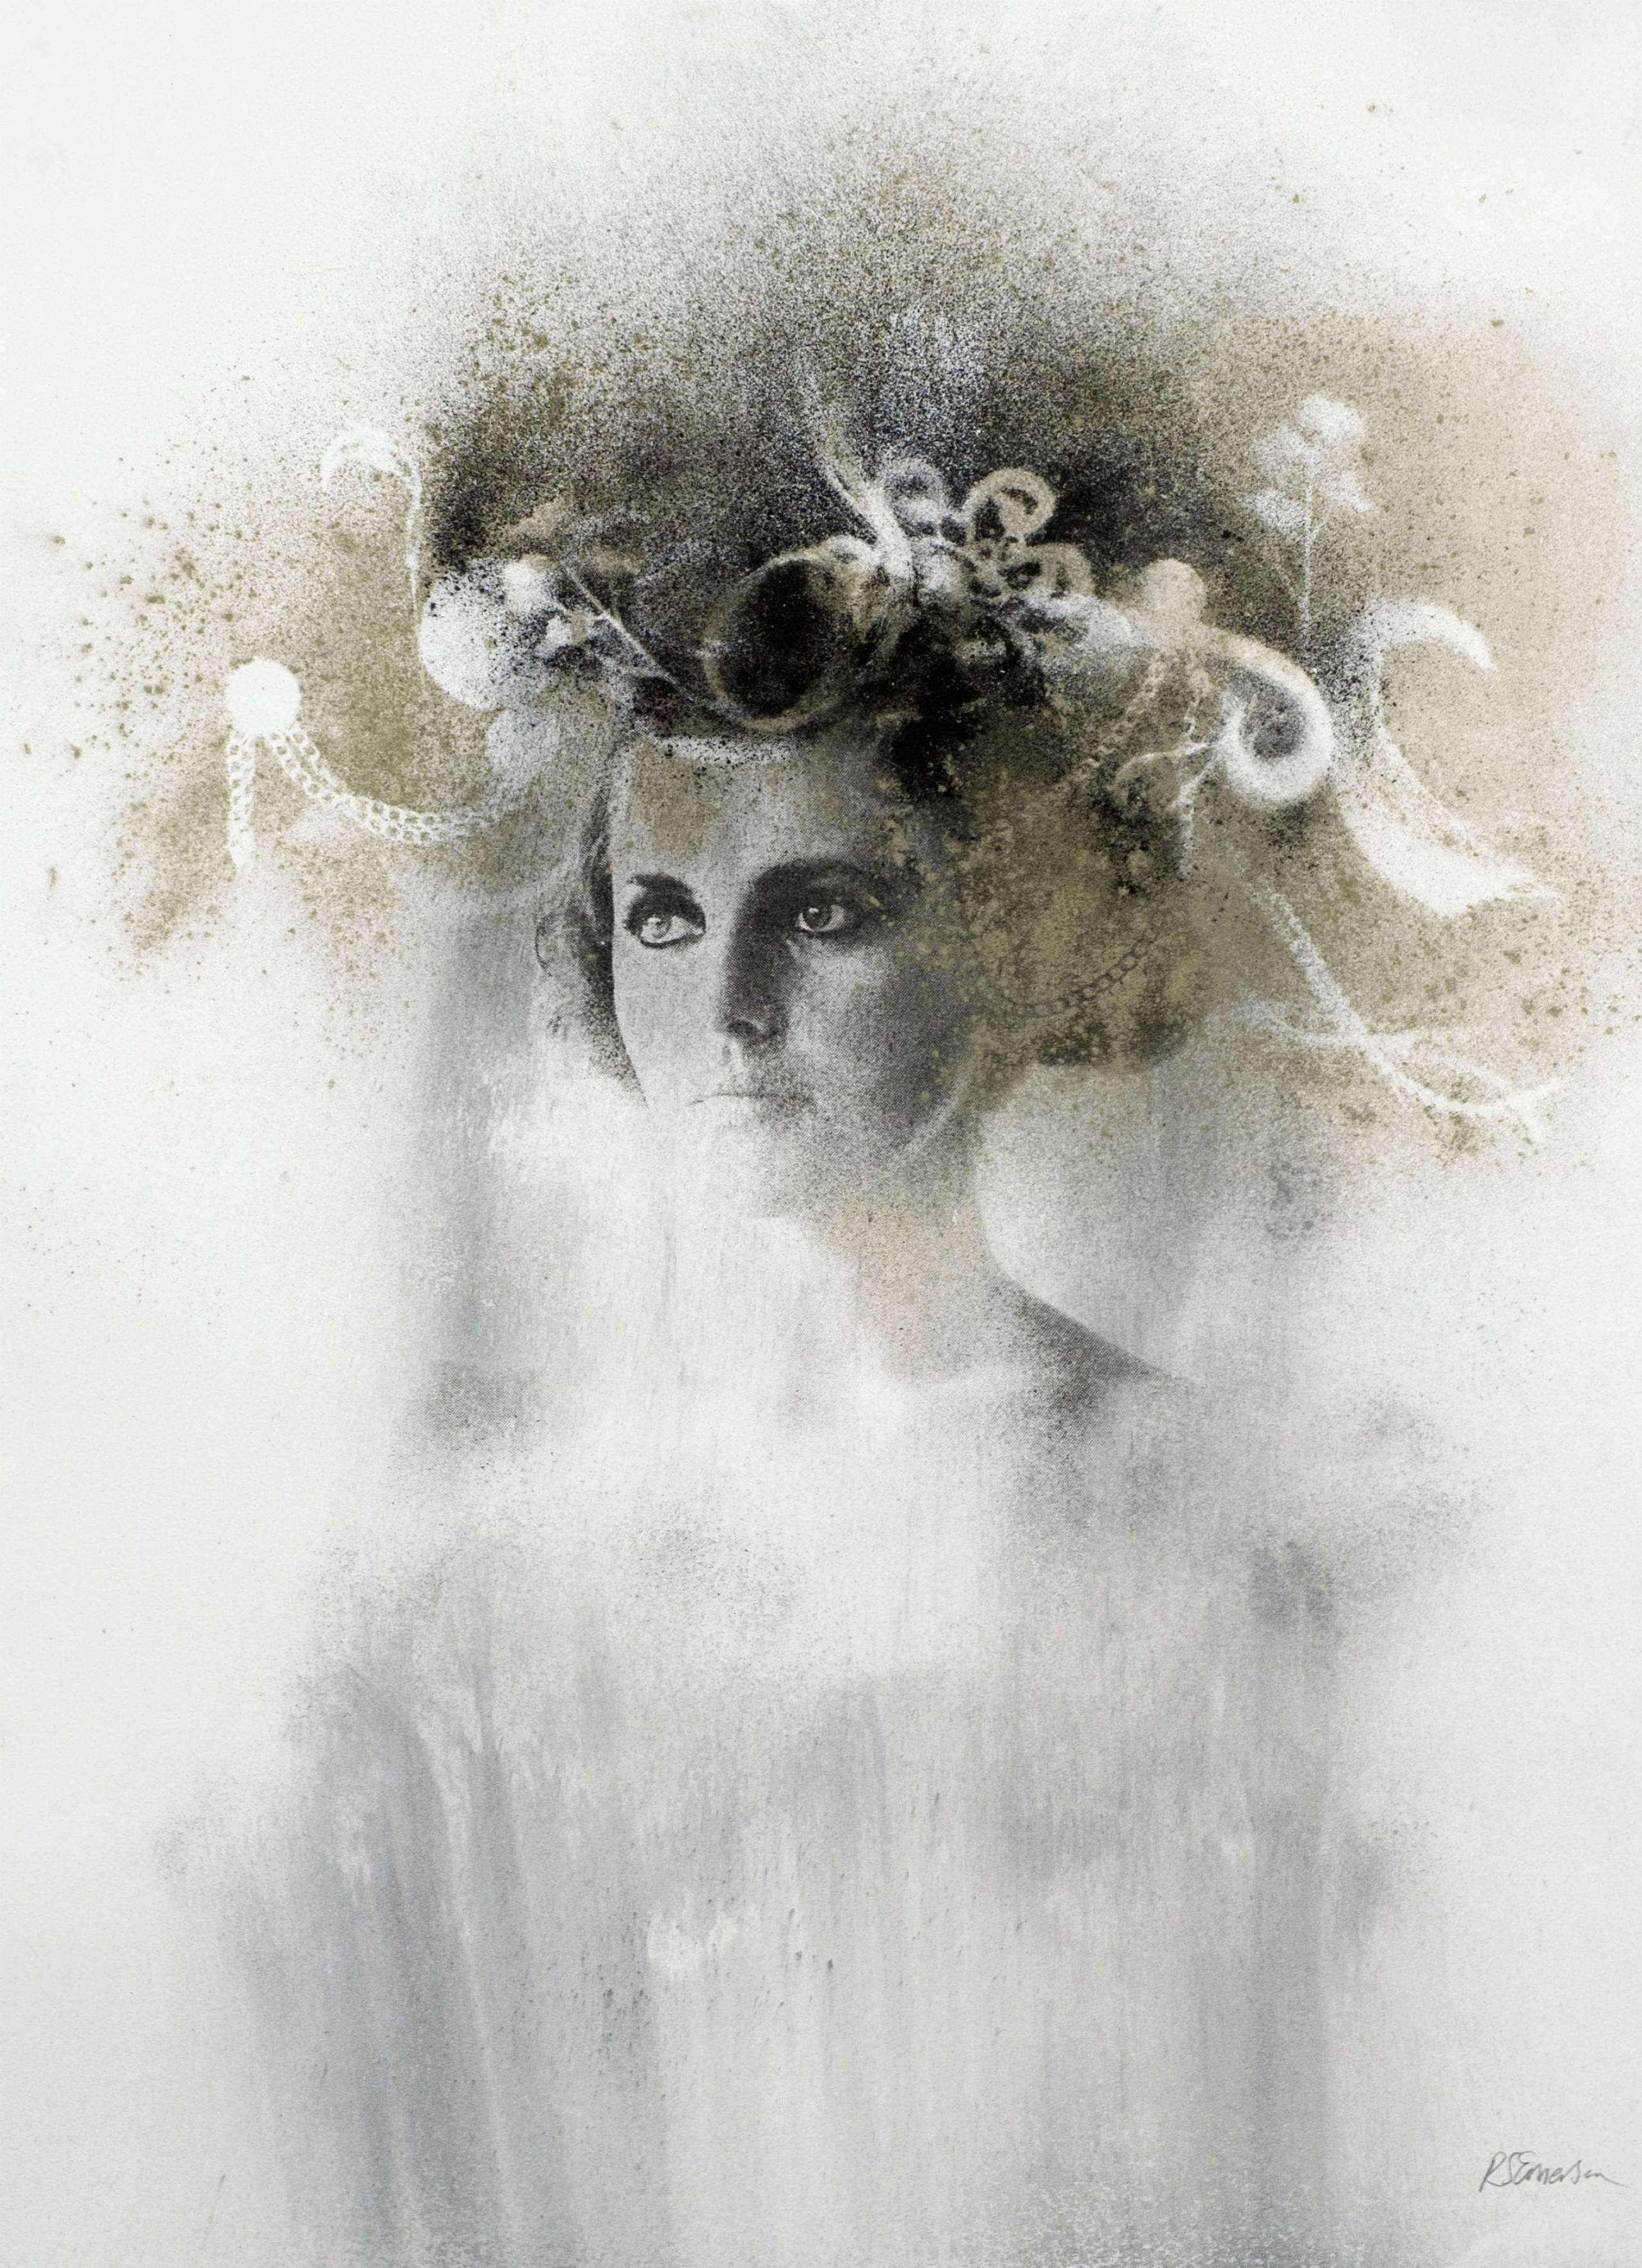 Ophelia # 5, hand painted, mixed media portrait photography on paper, framed